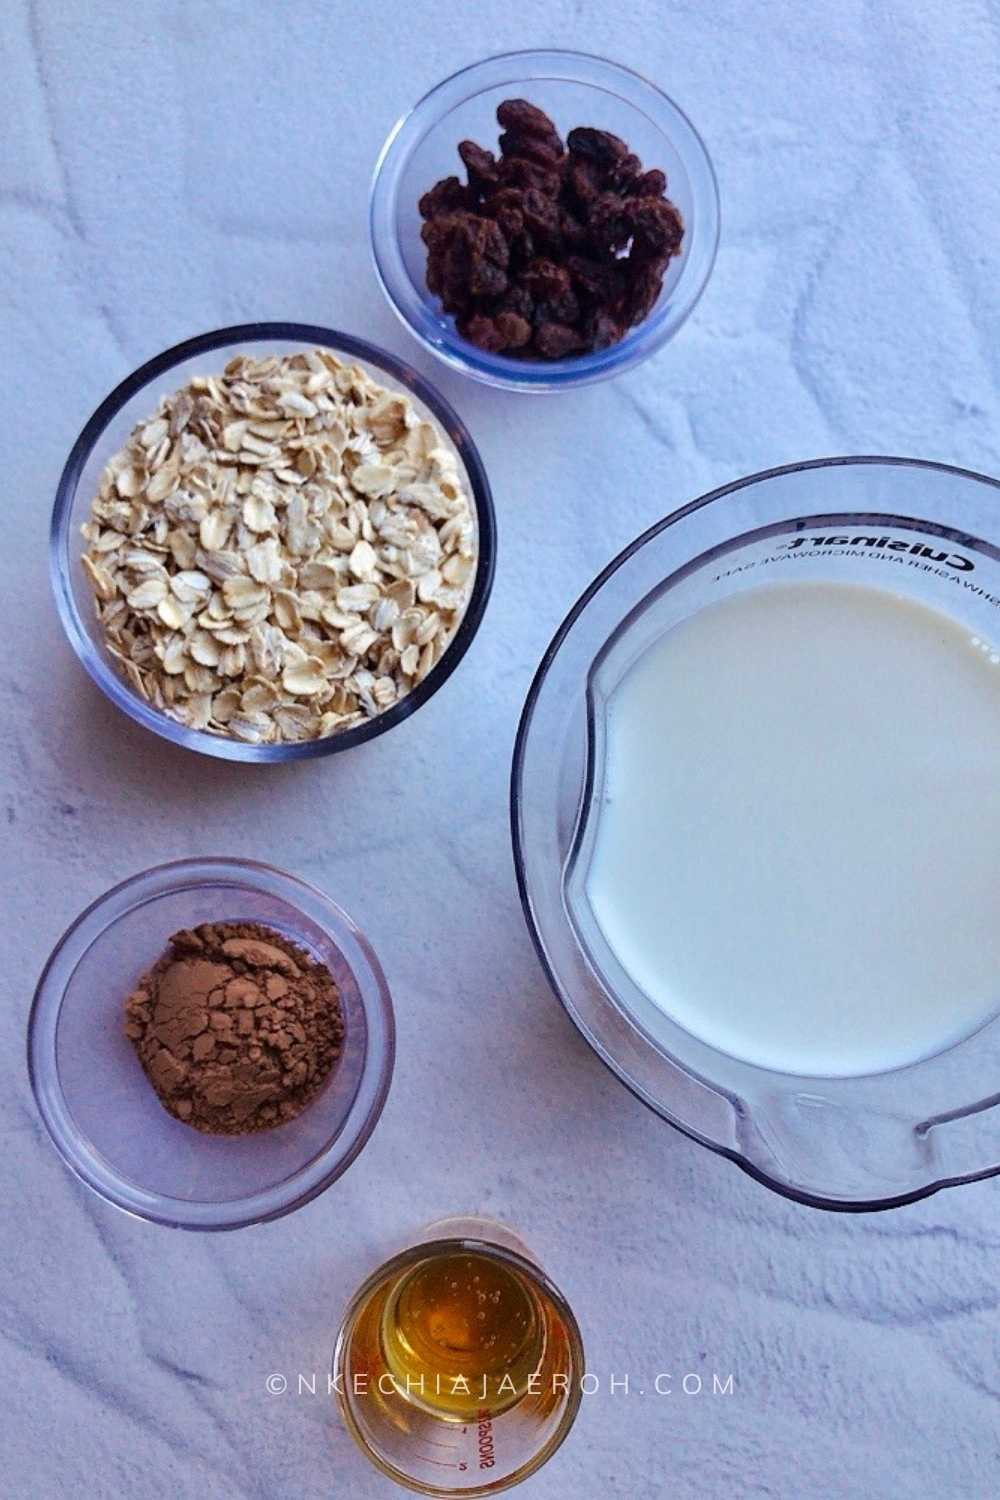 ingredients for this recipe includes oats or oatmeal (well, hello), raw cacao, raisins, plant-based milk, and honey. You can use another sweetener of choice, such as maple syrup if you do like honey, and you guessed right, this recipe only needs five ingredients!